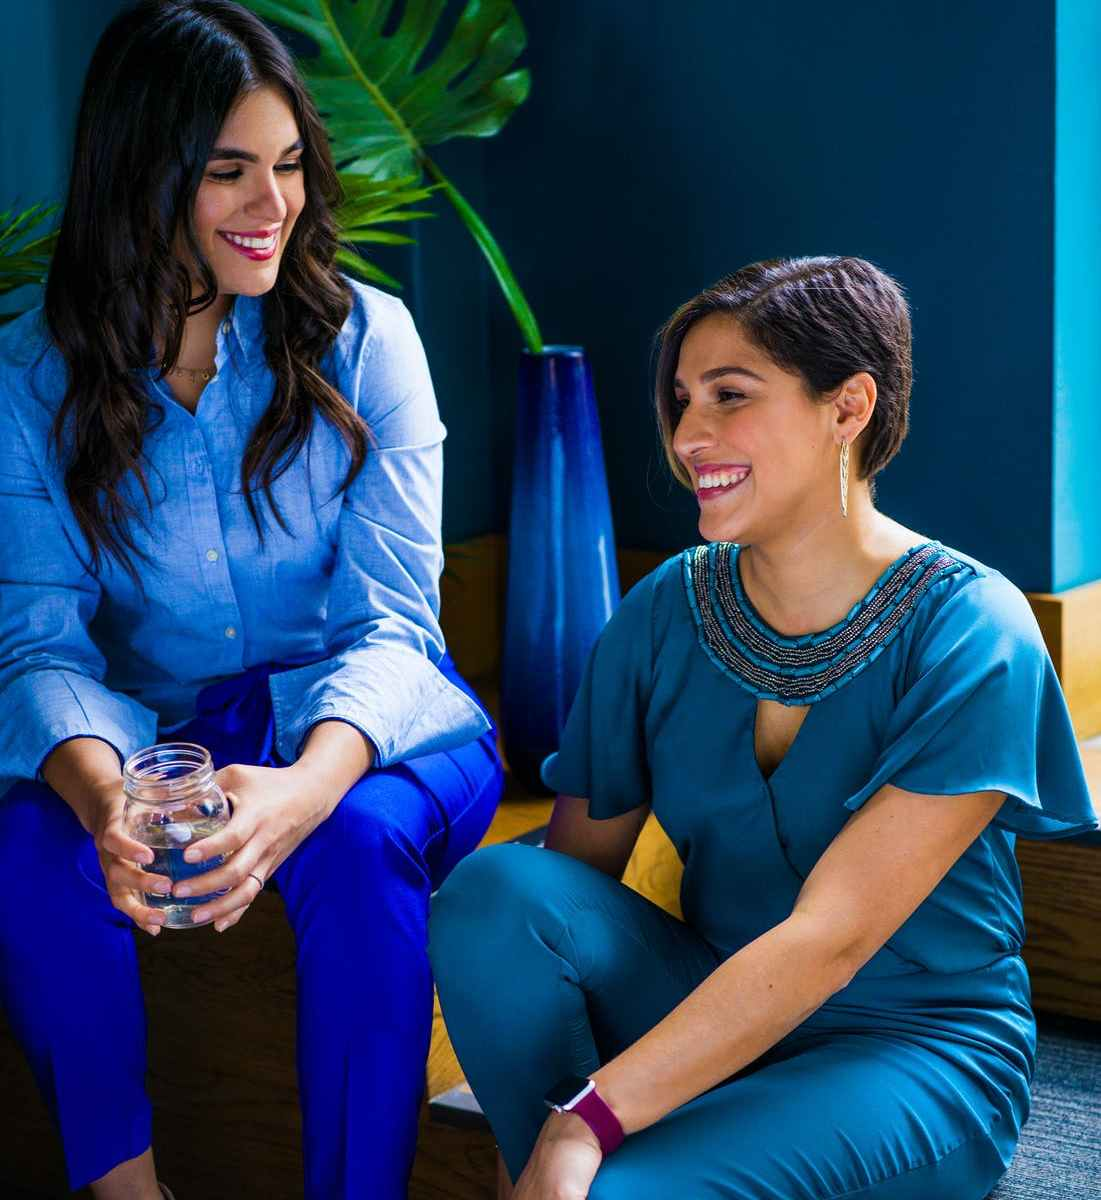 Two brunette women talking and smiling next to blue vase with green plant